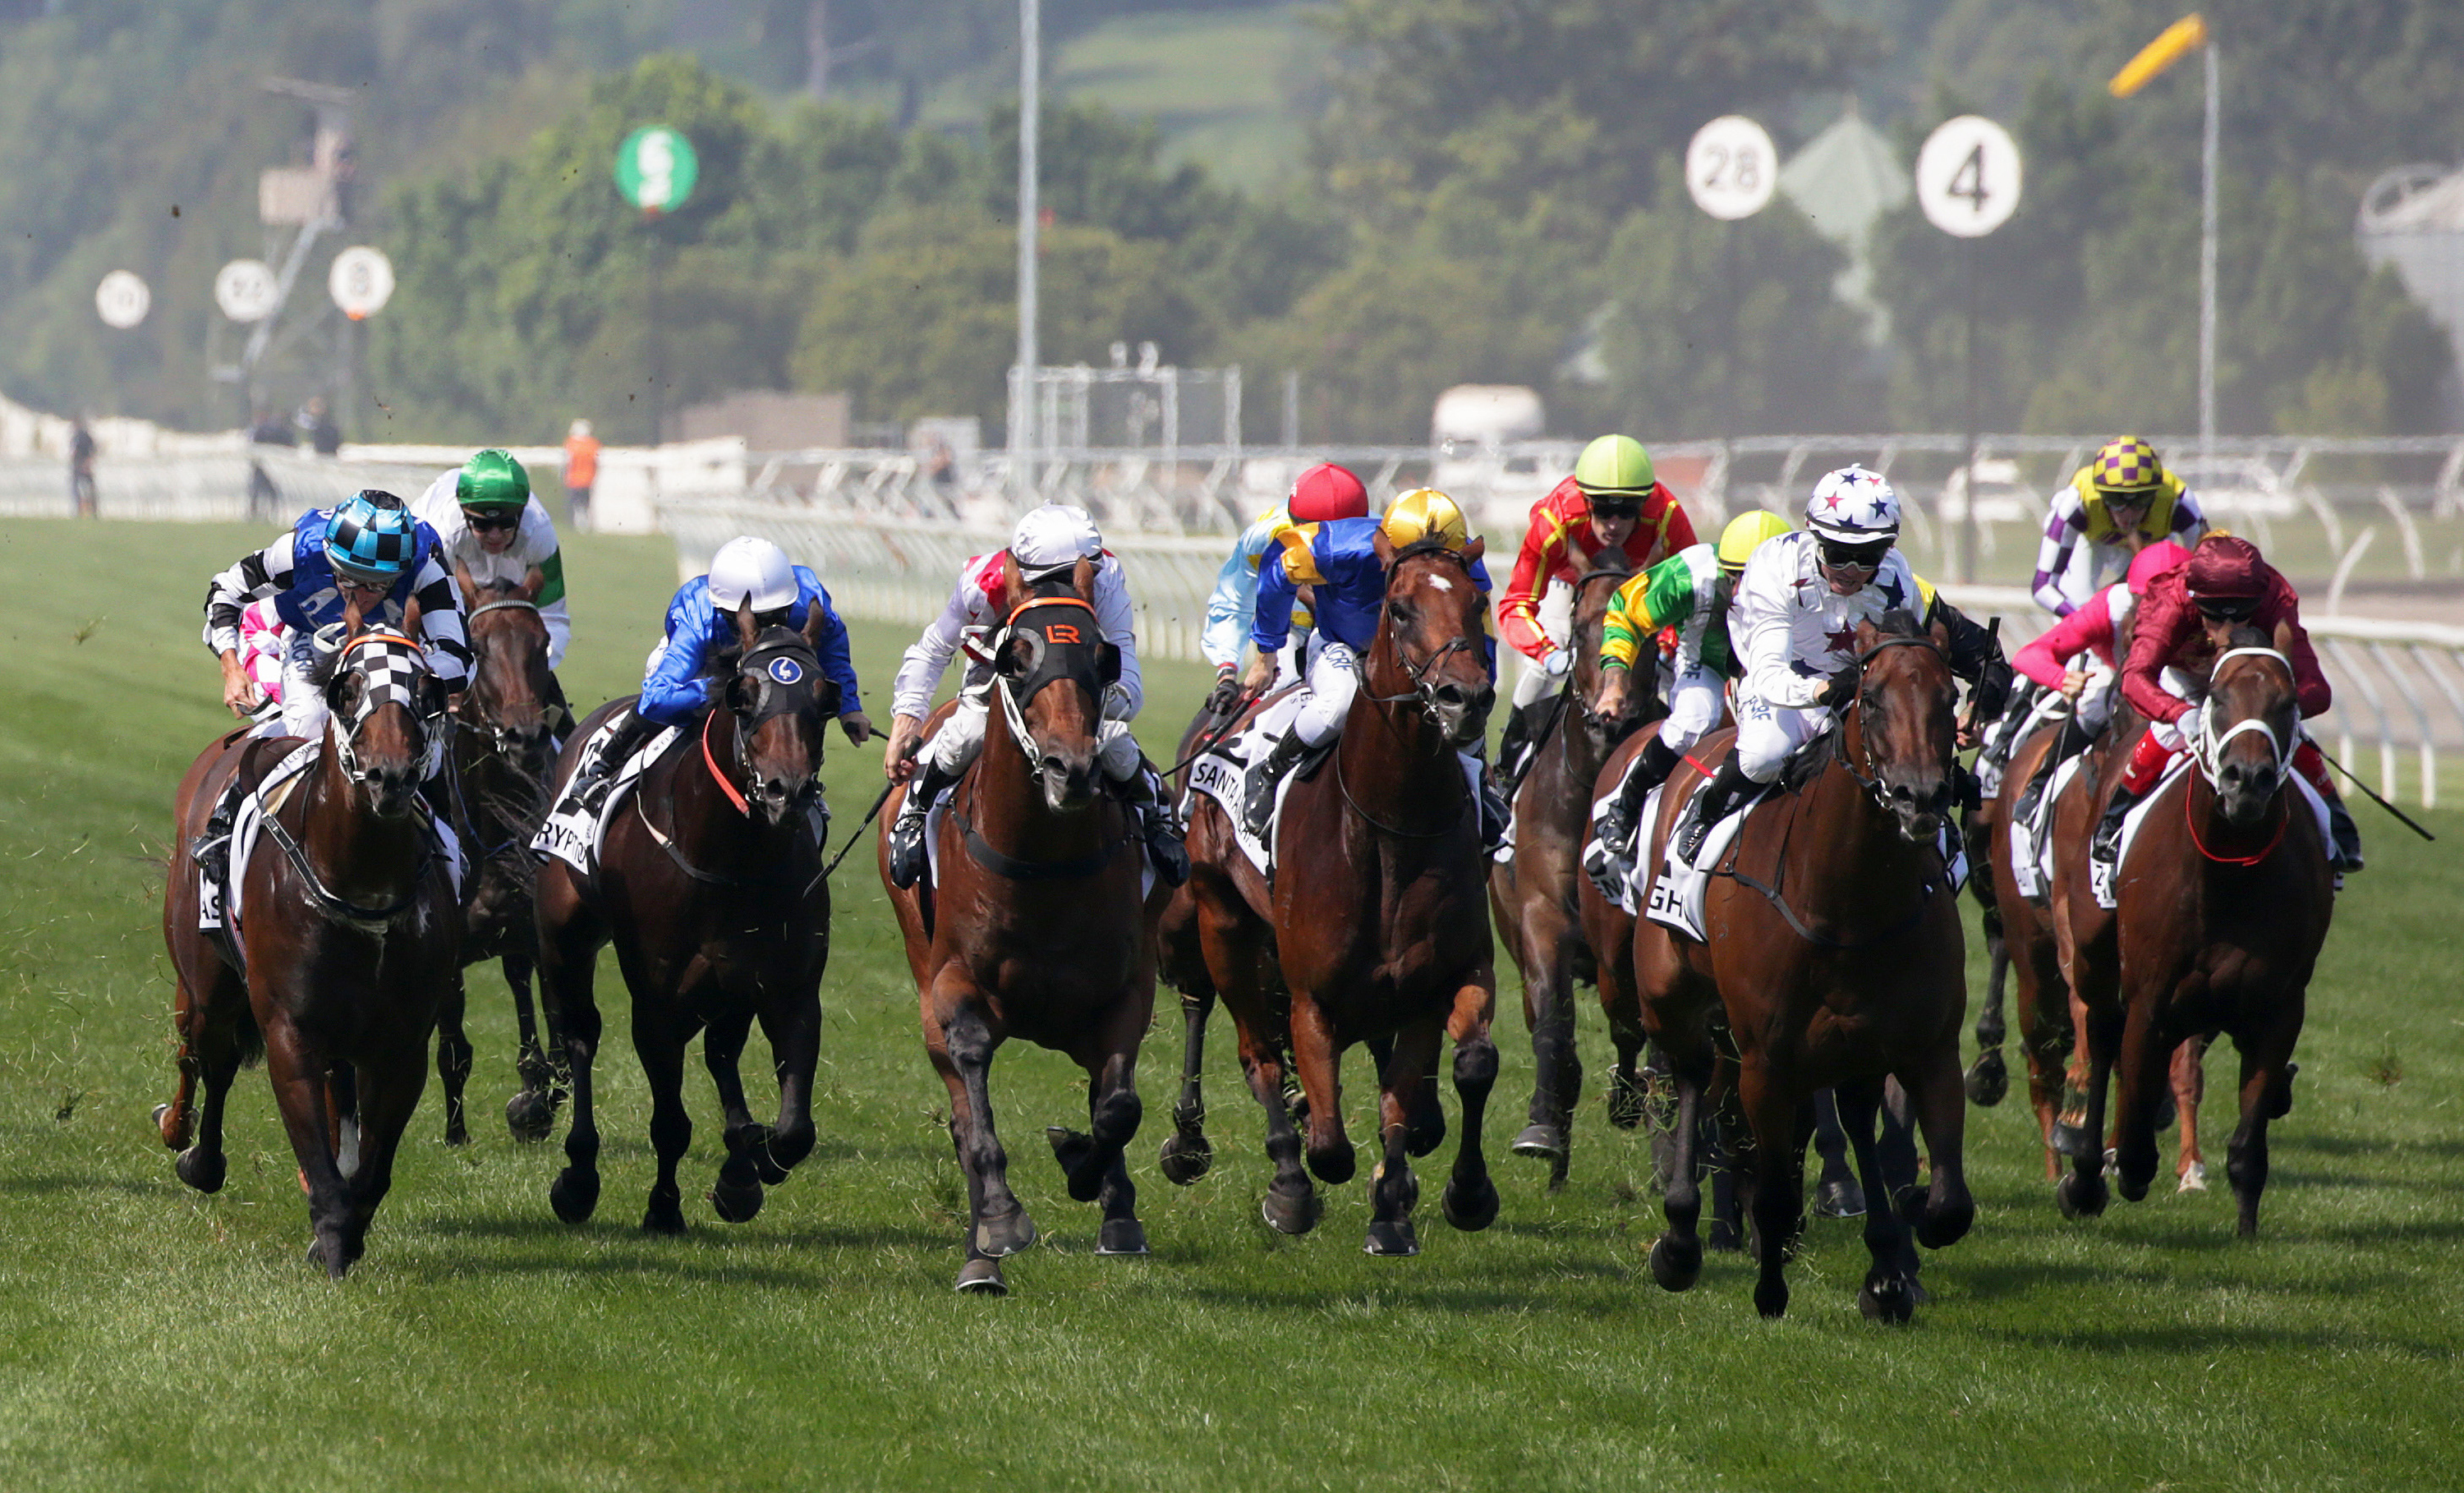 Horse Racing Betting Tips: Wednesday at Cartmel